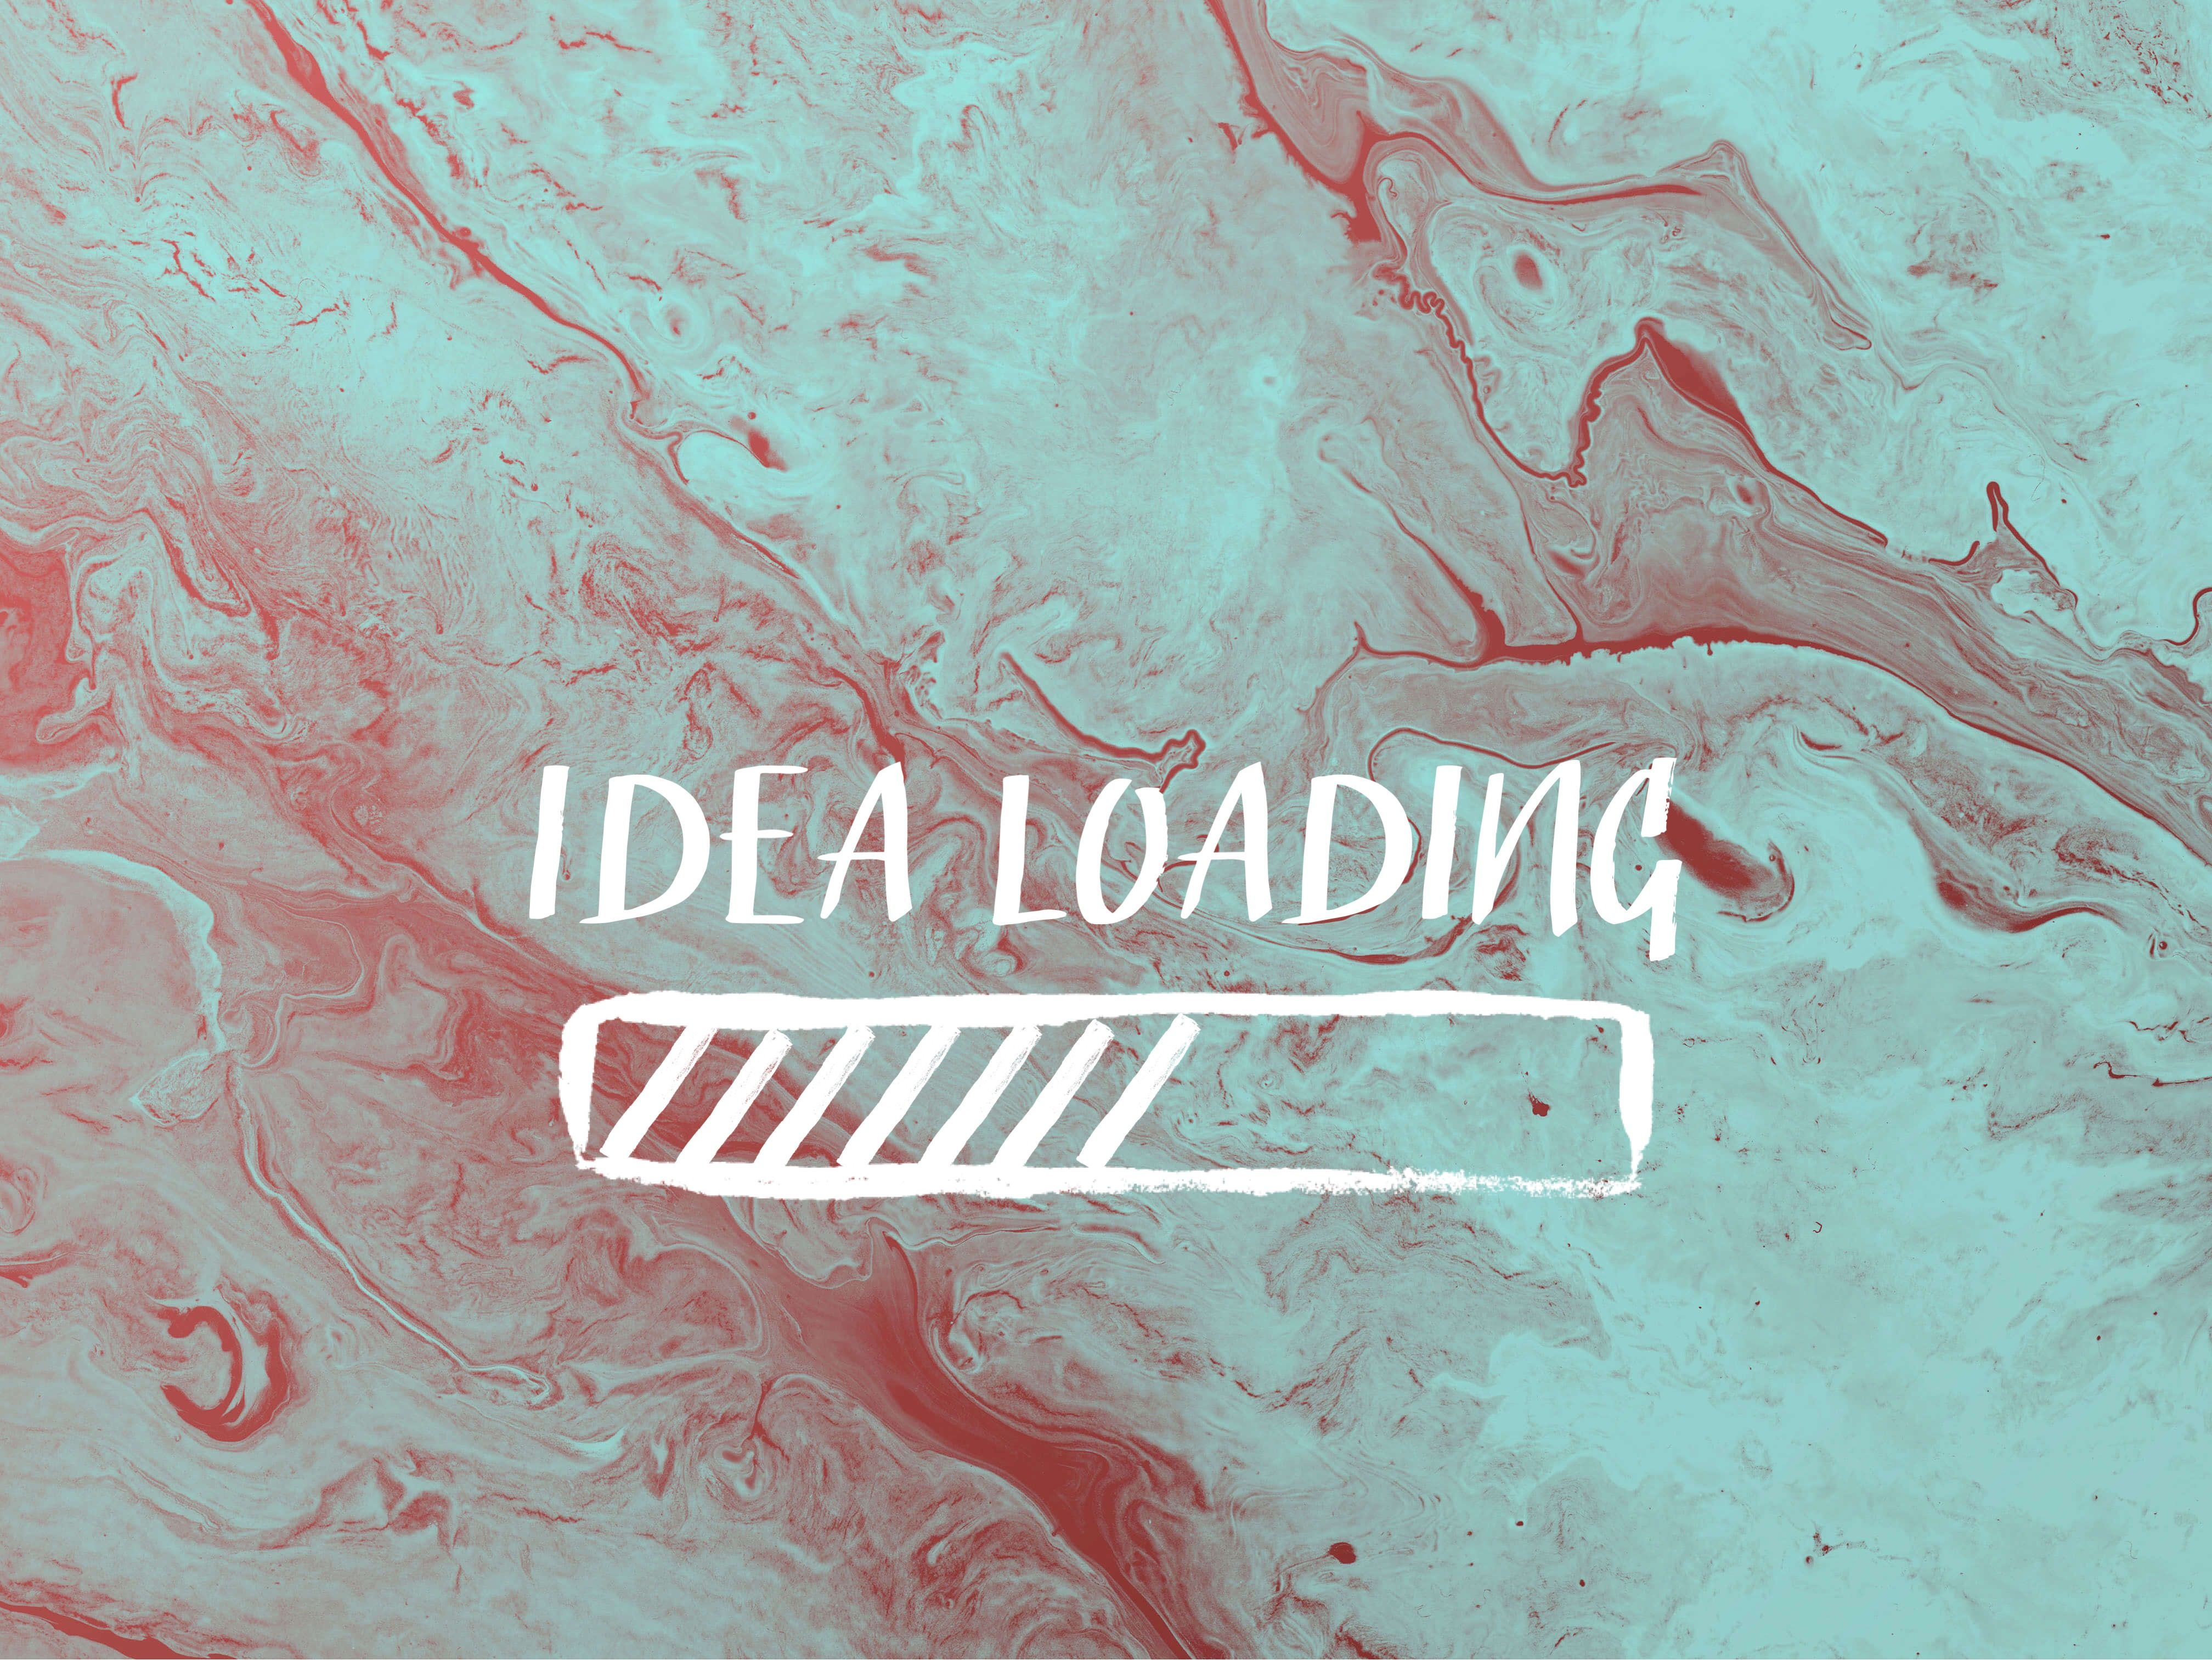 Idea Loading Laptop Wallpaper Cute Laptop Wallpaper Laptop